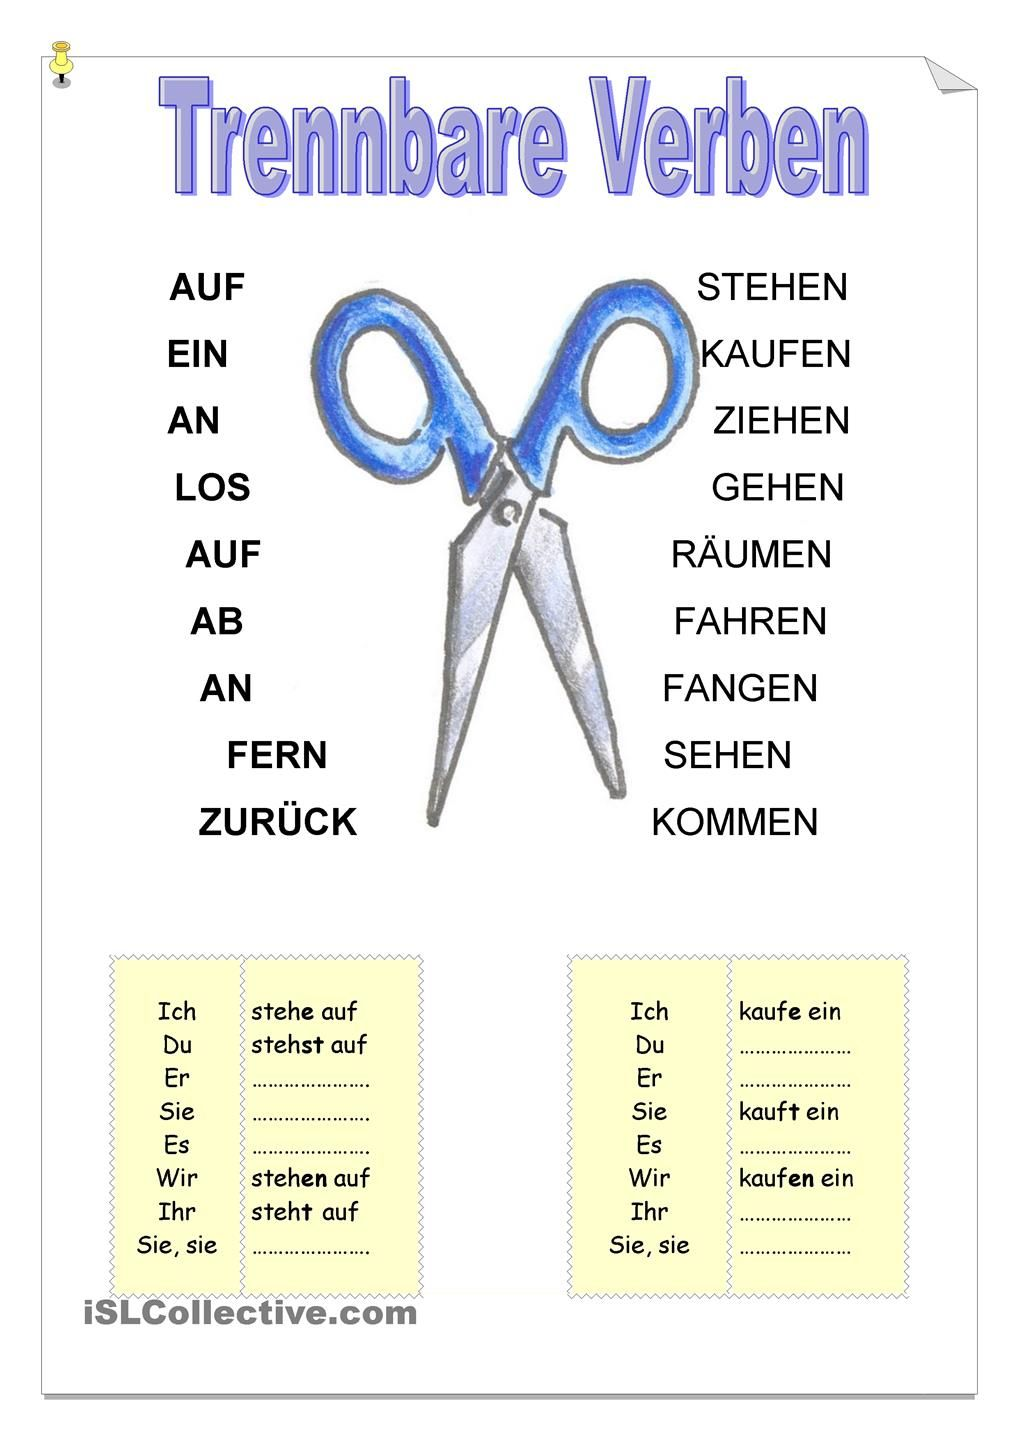 Worksheets German Grammar Worksheets trennbare verben deutsch and worksheets worksheets